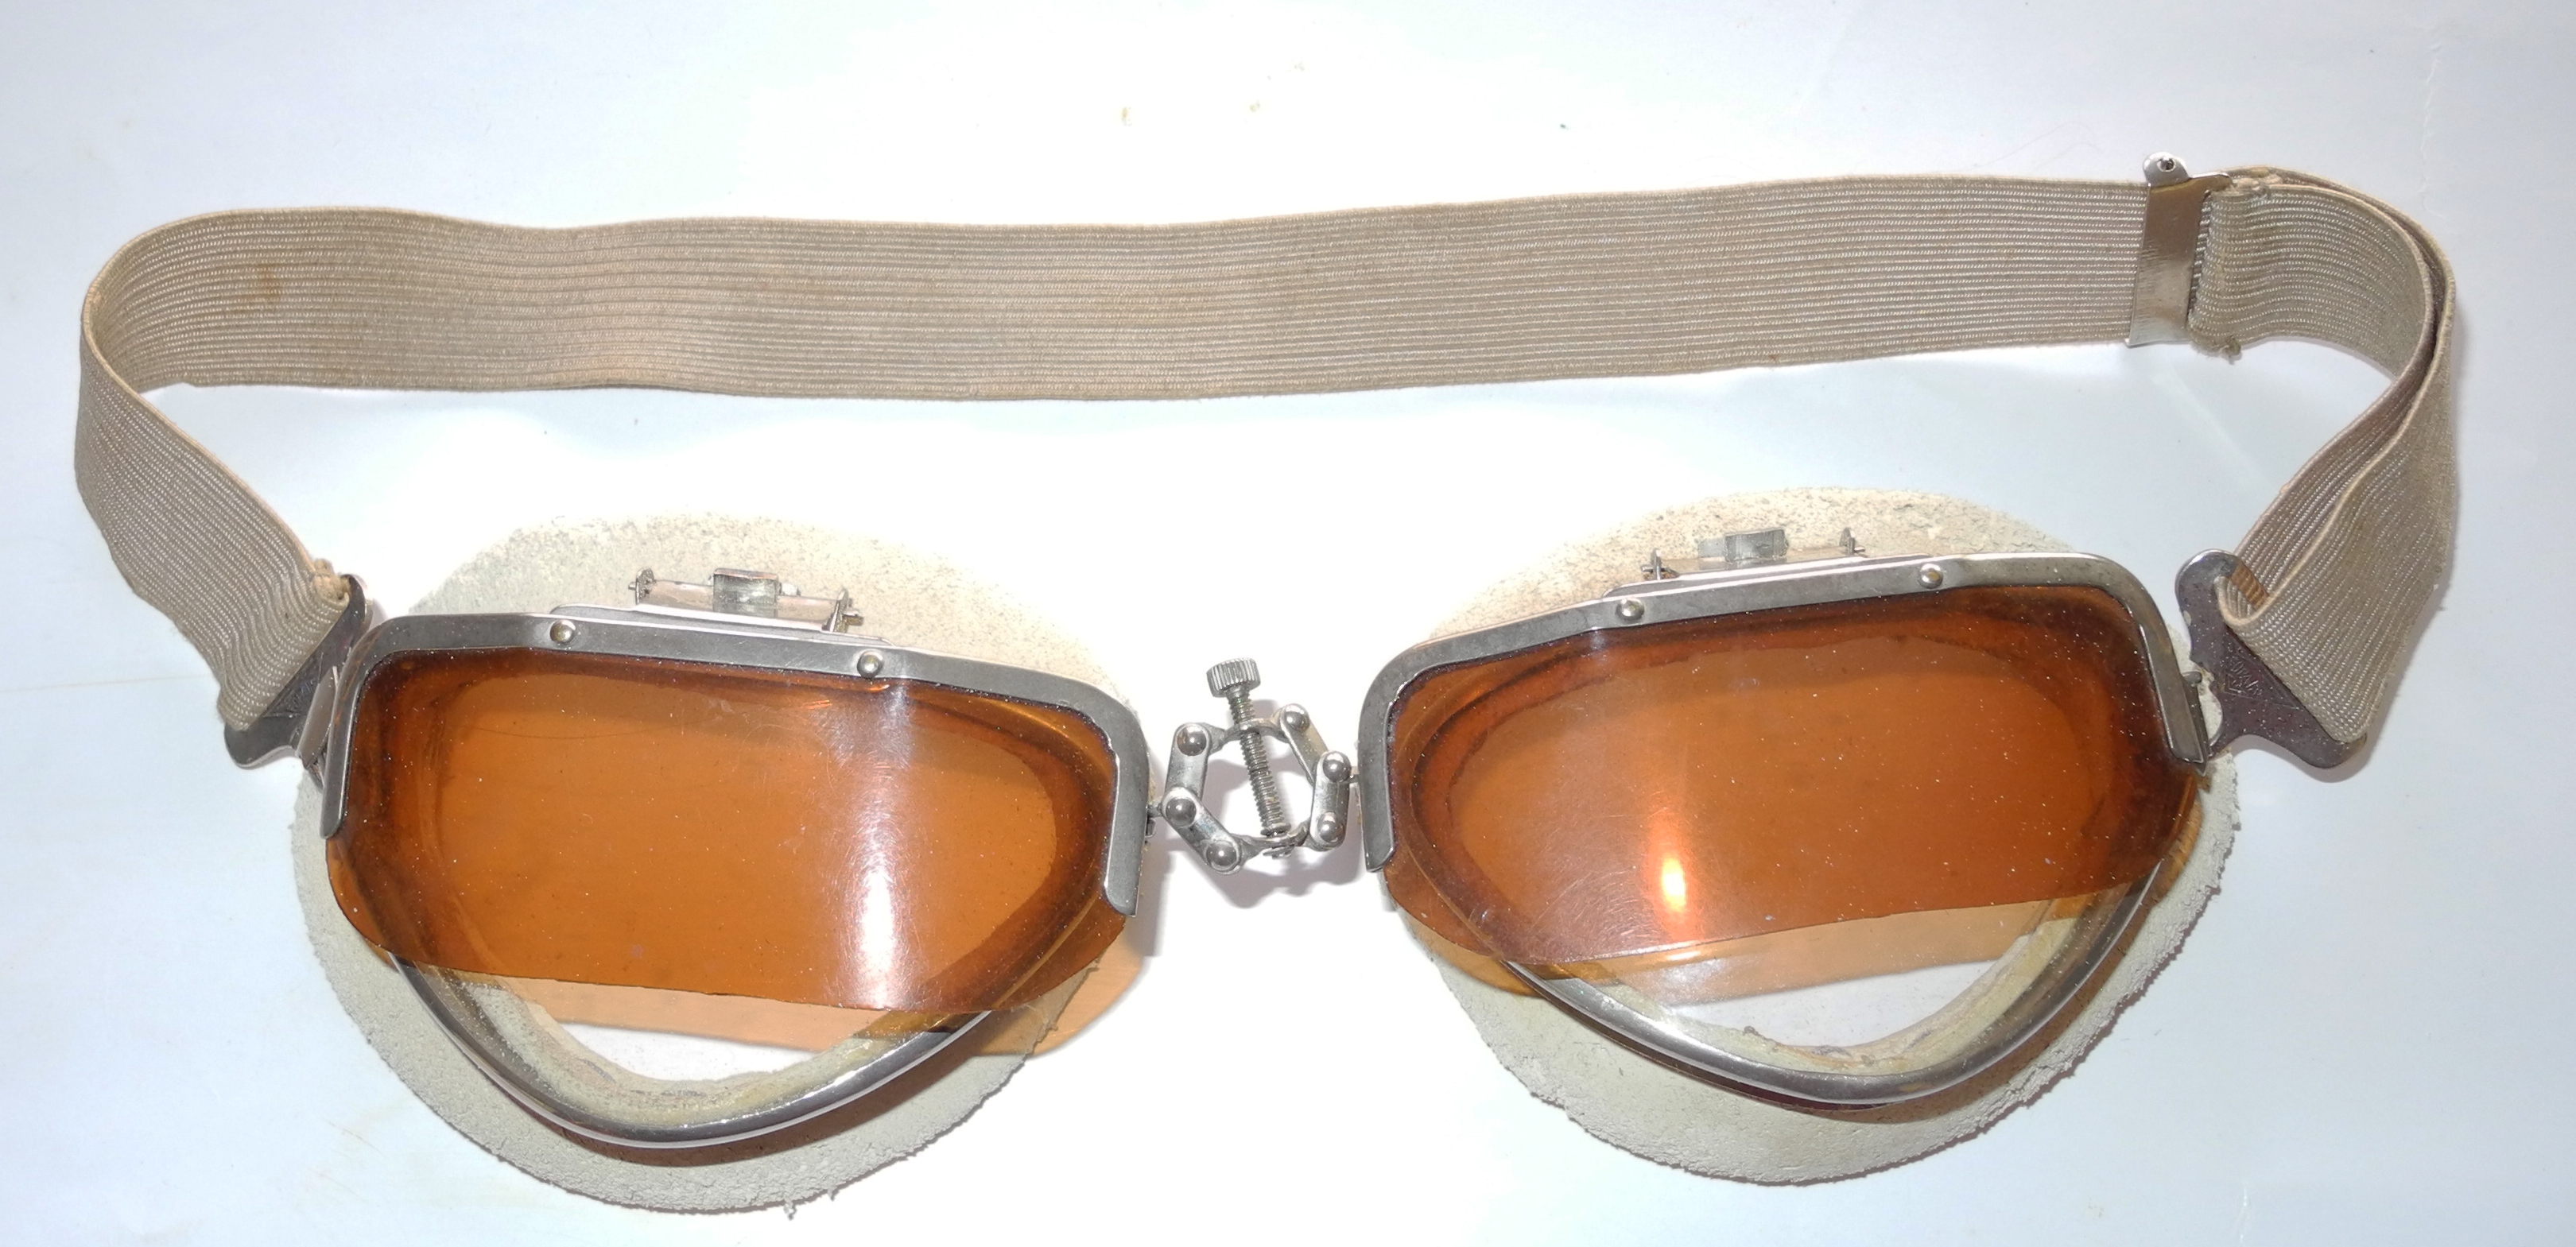 Italian goggles with flip screens